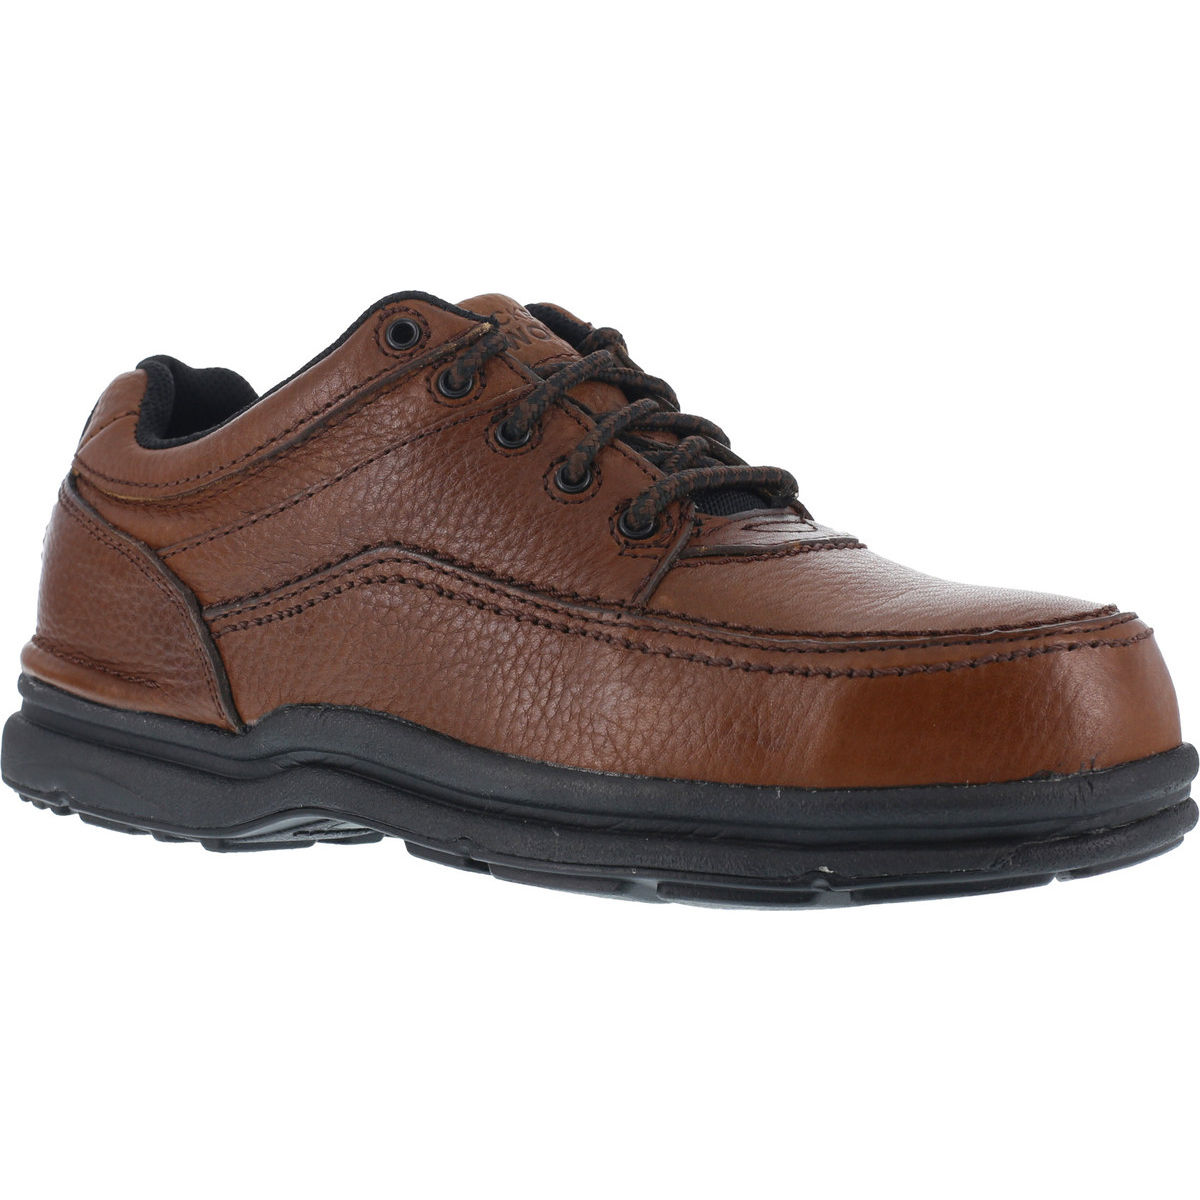 Rockport Works Men's World Tour Steel Toe 5 Eye Tie Casual Moc Toe Oxford Shoe - Brown, 9